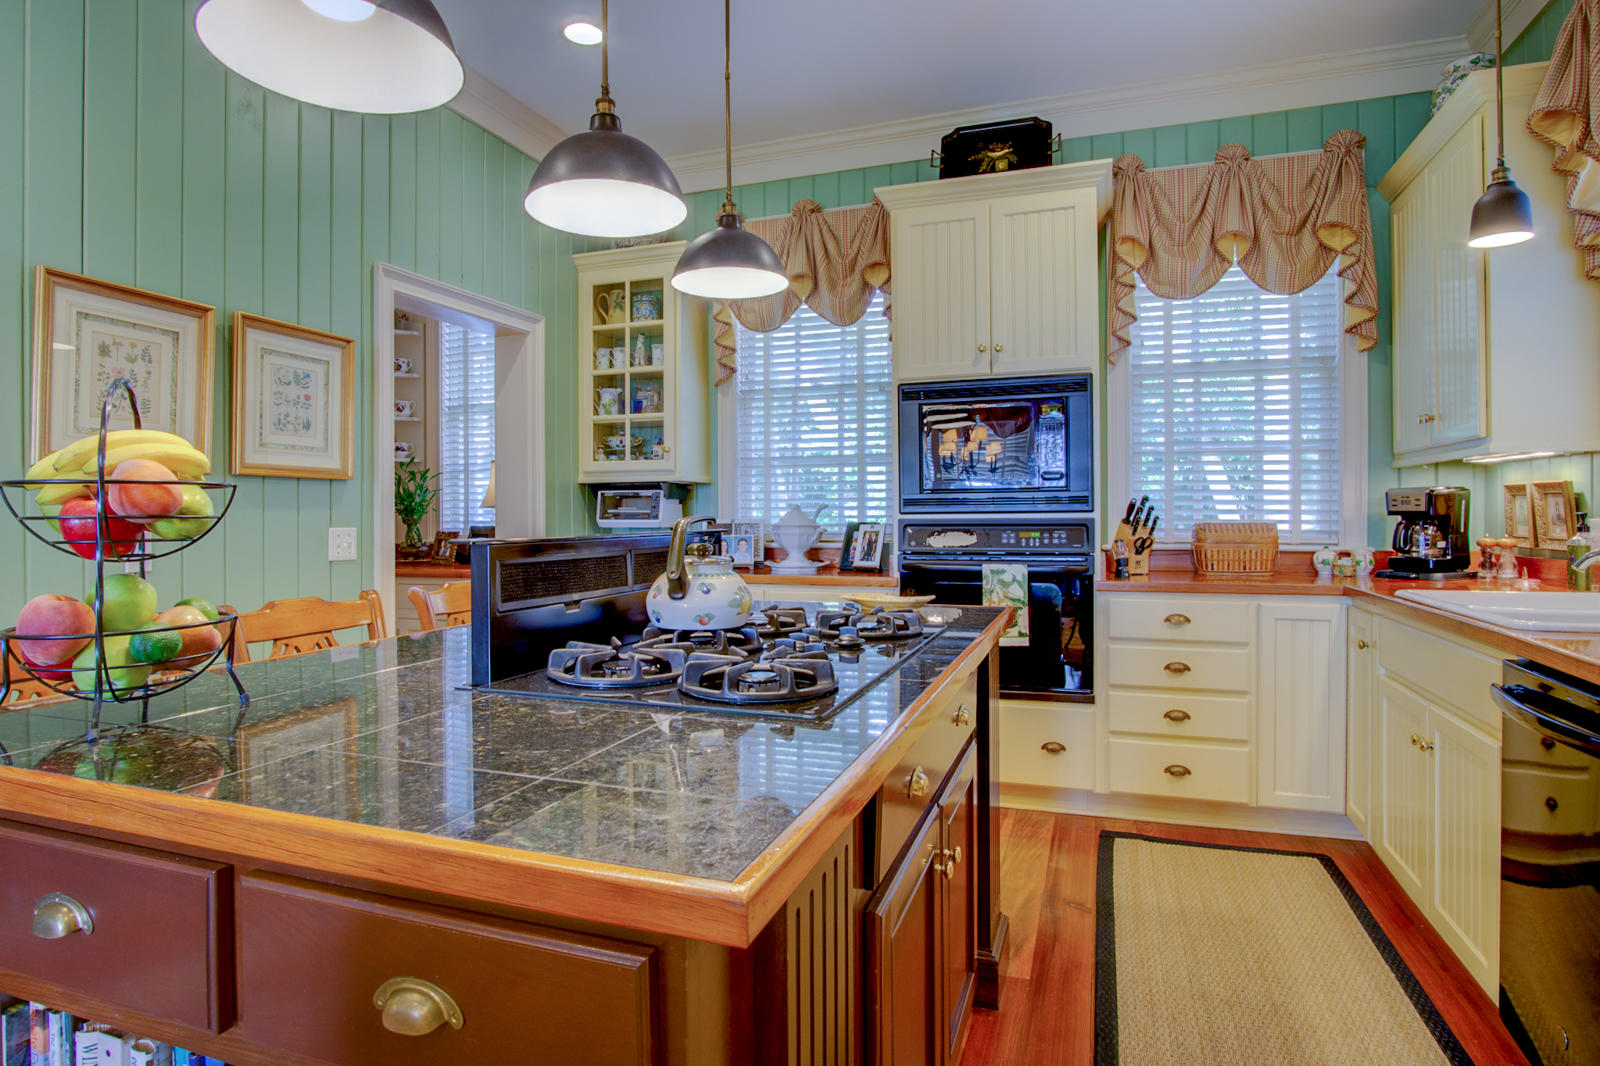 Bull Point Plantation Homes For Sale - 123 Bull Point, Seabrook, SC - 16